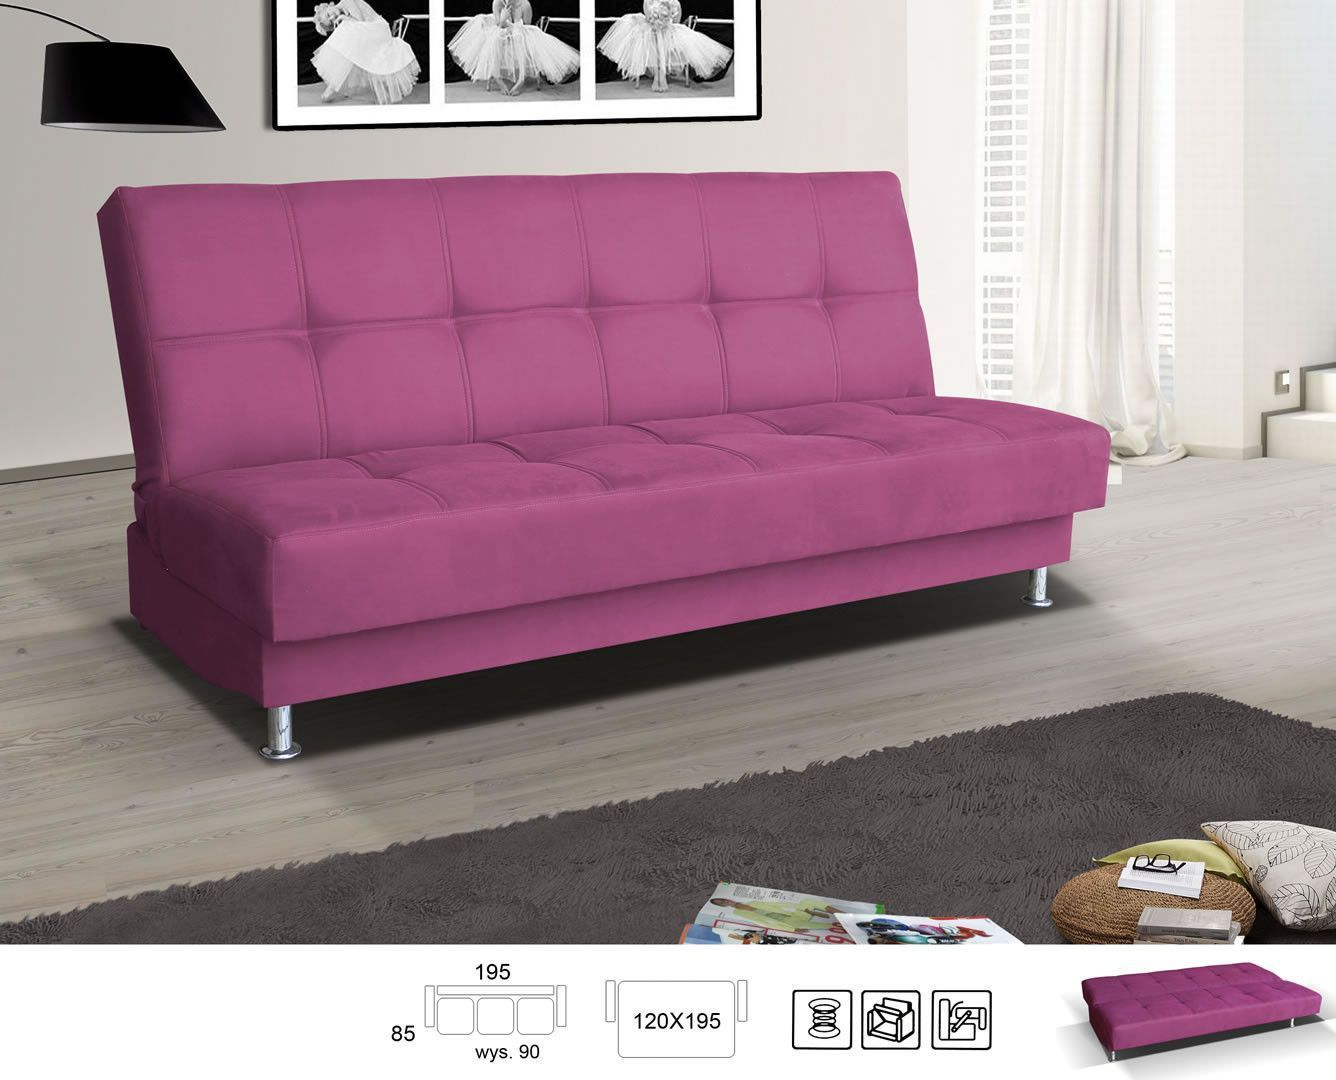 canap clic clac ponca rose clic clac et bz canap s sofas salon s jour. Black Bedroom Furniture Sets. Home Design Ideas